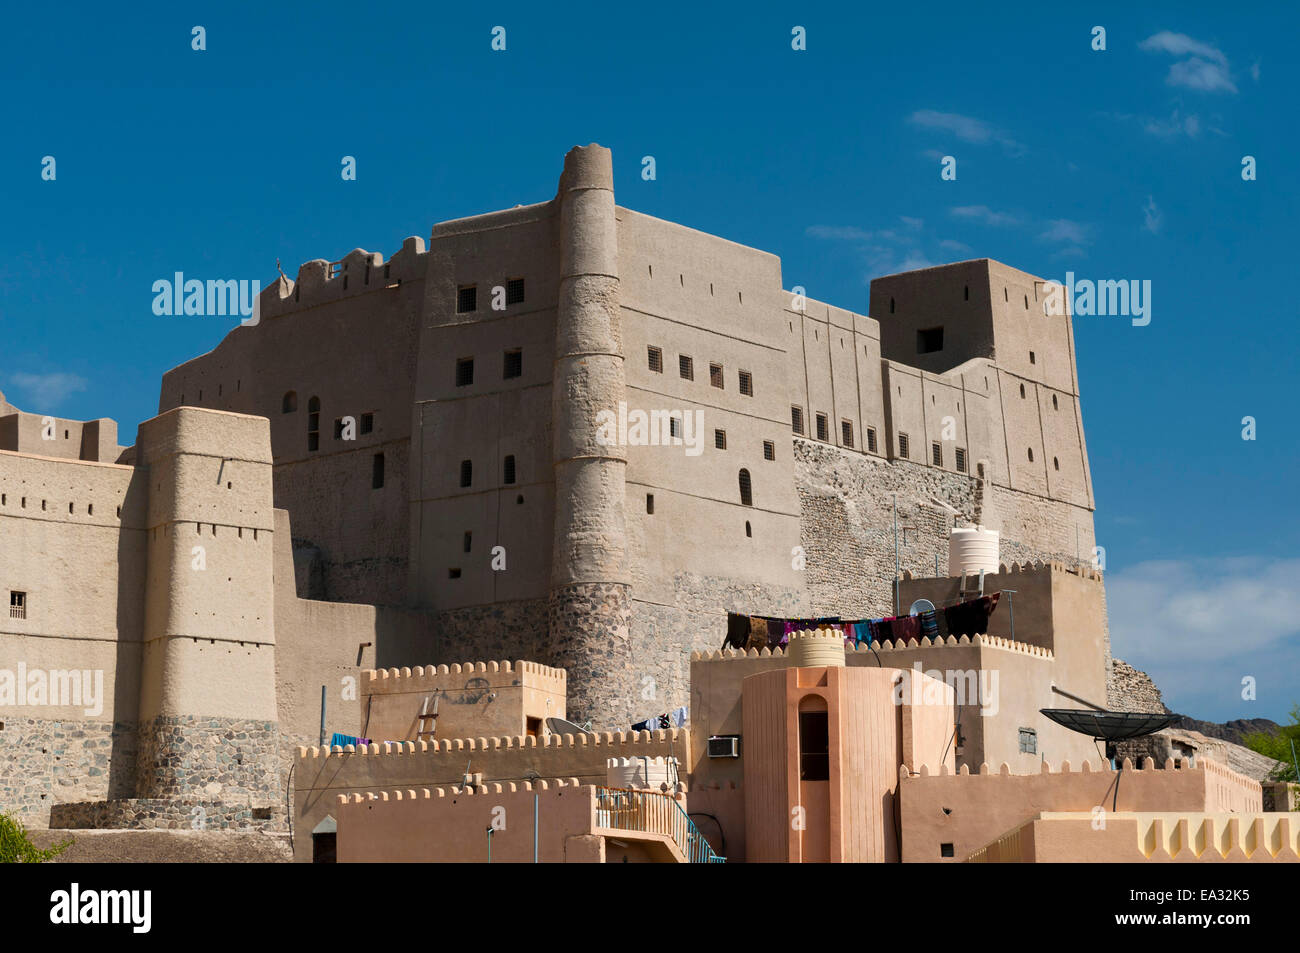 Bahla Fort, UNESCO World Heritage Site, Oman, Middle East - Stock Image